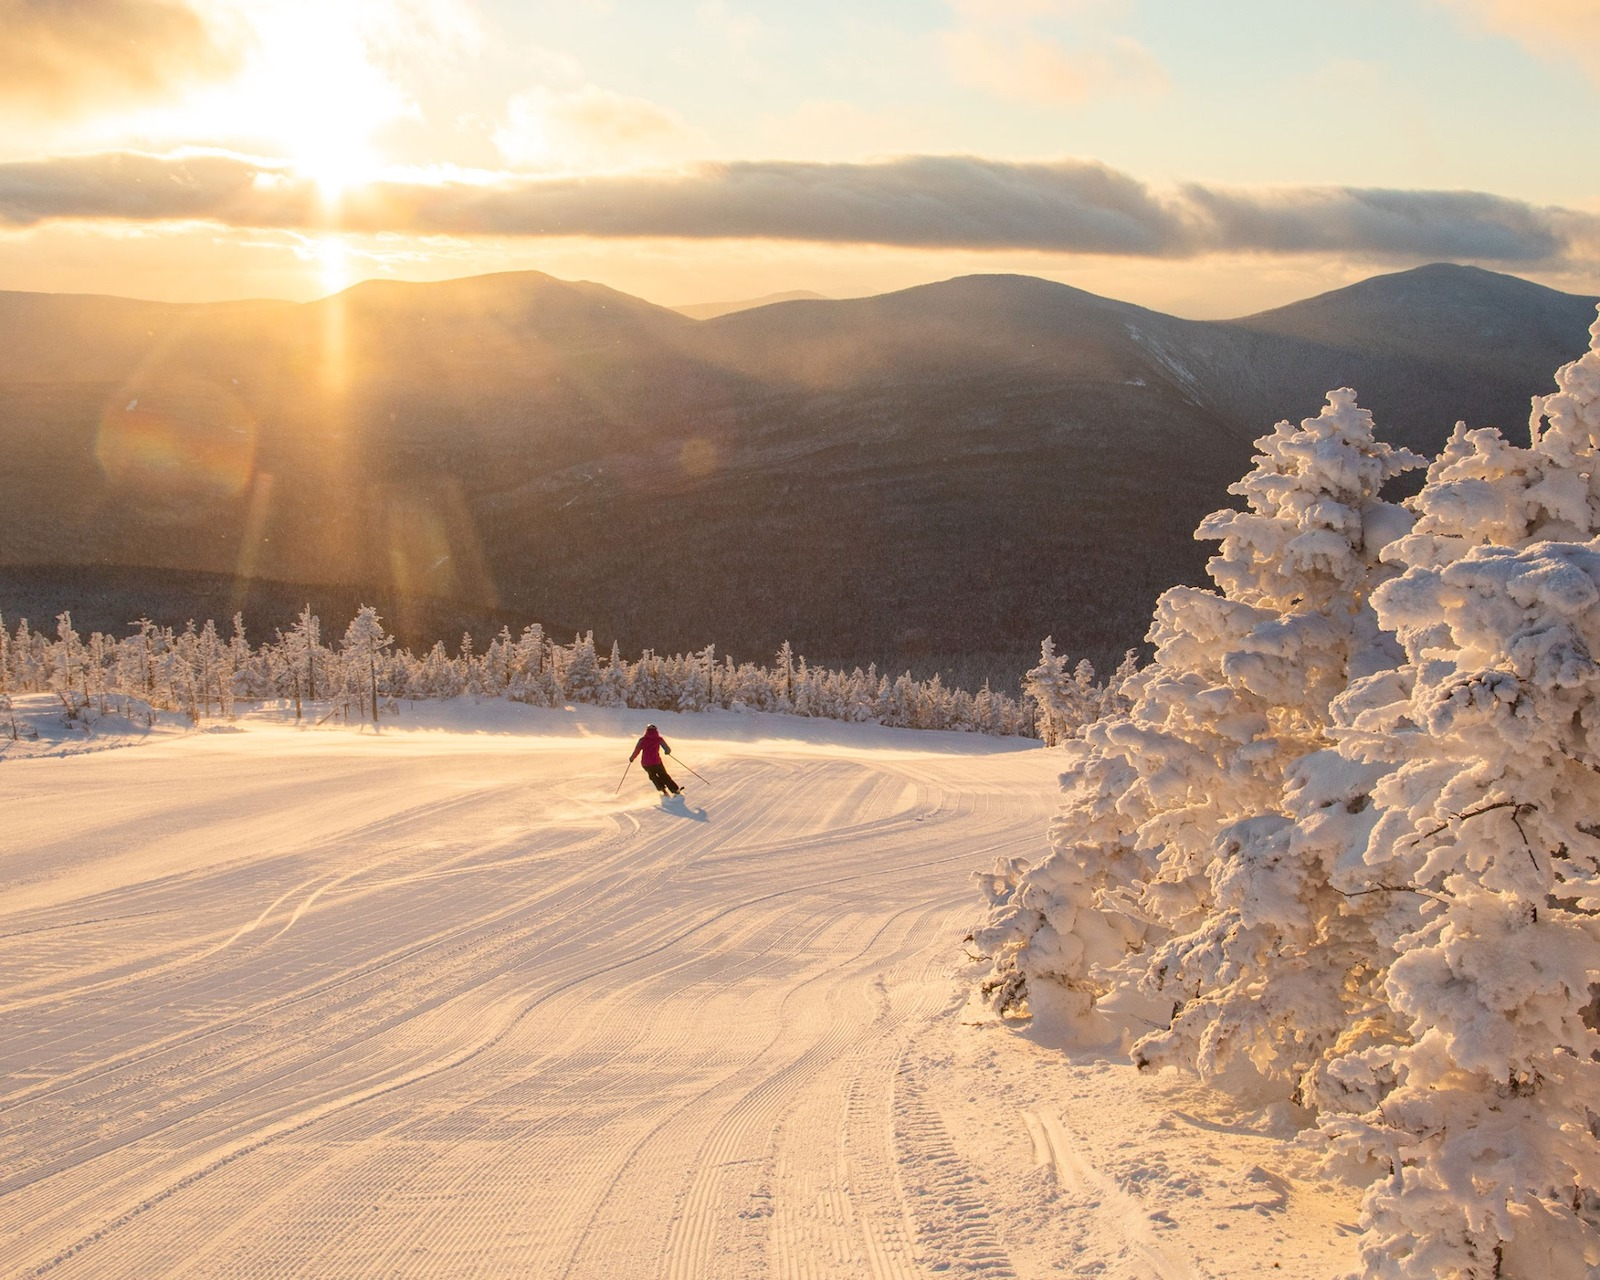 Image of a skier going down the slopes surrounded by mountain views and golden light at Sugarloaf Ski Resort in Maine